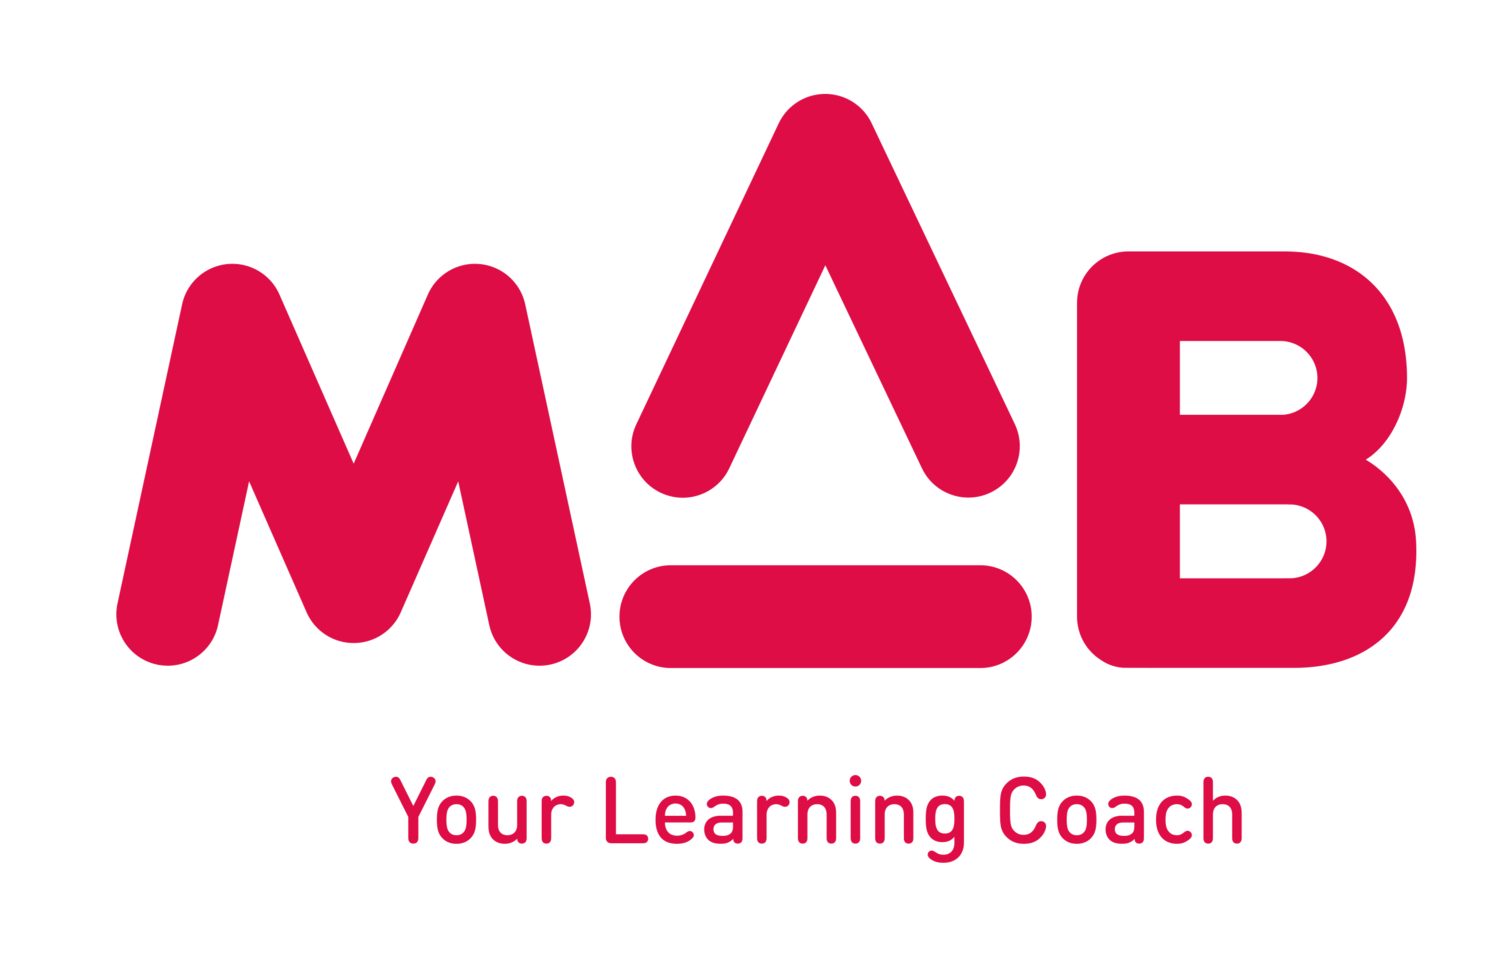 MAB Your Learning Coach